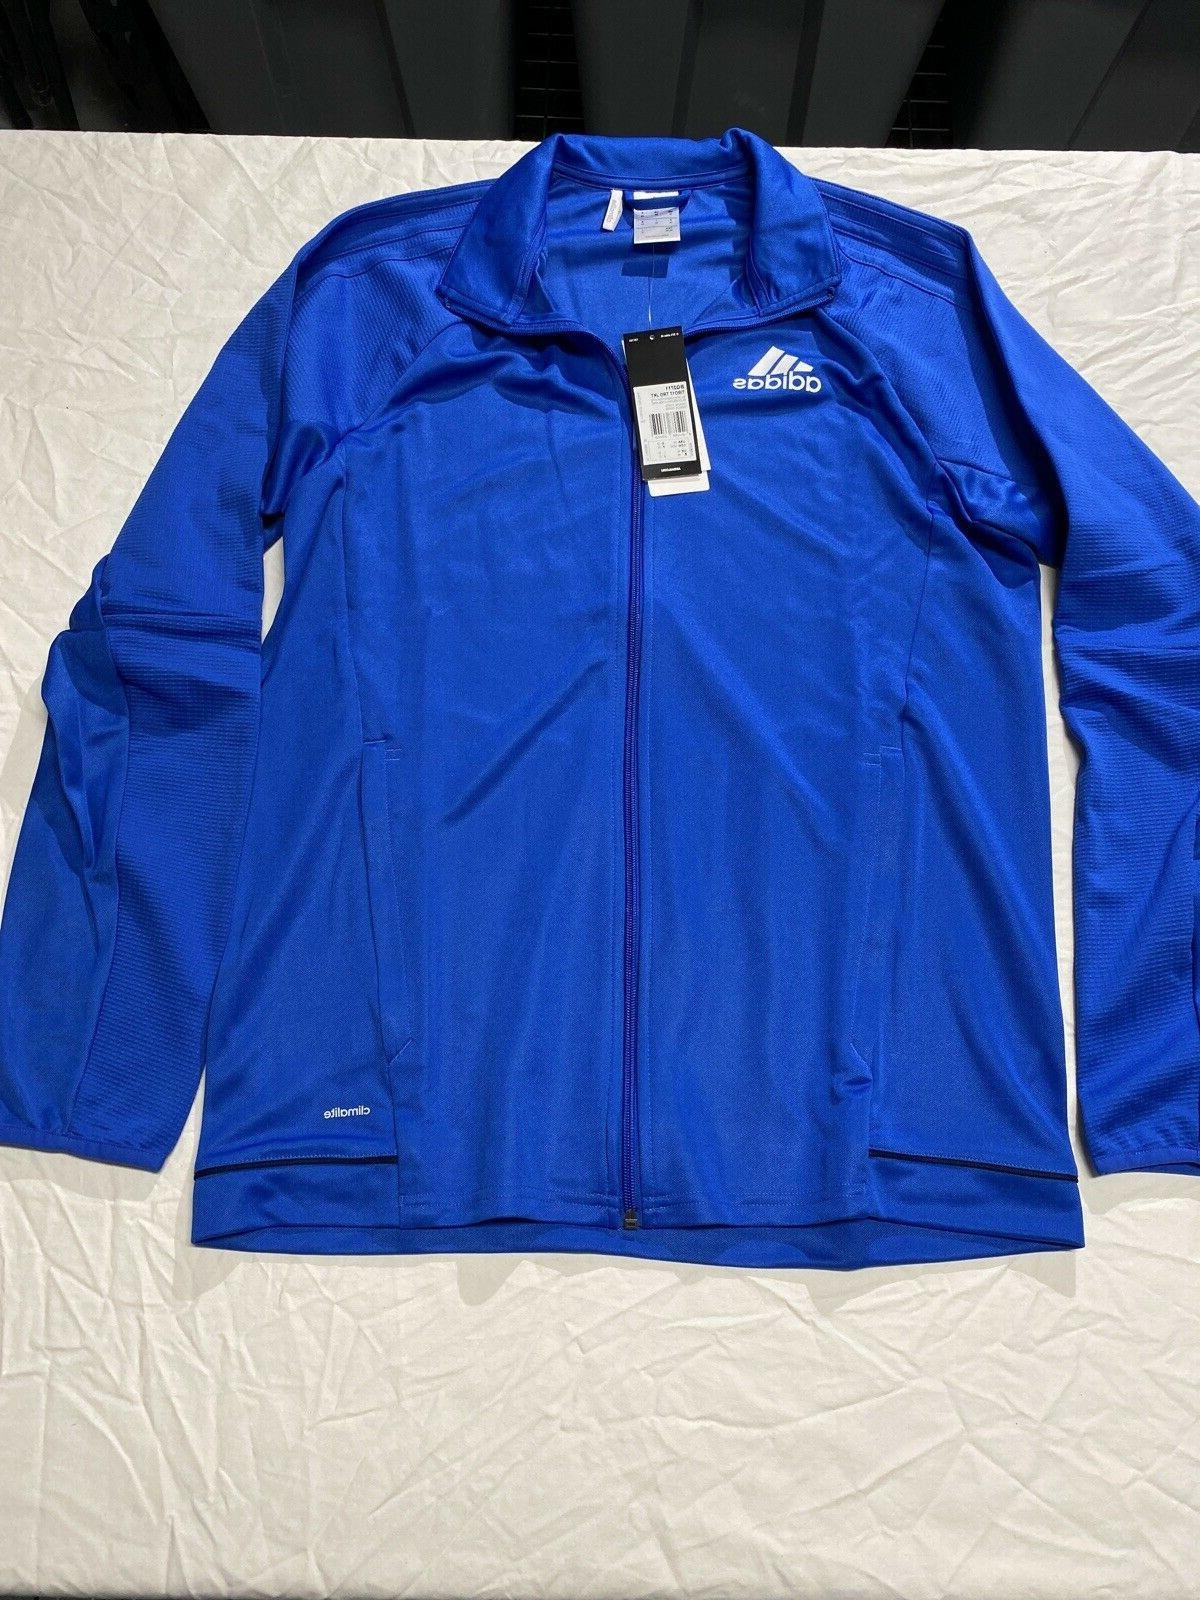 men s tiro 17 training jacket medium